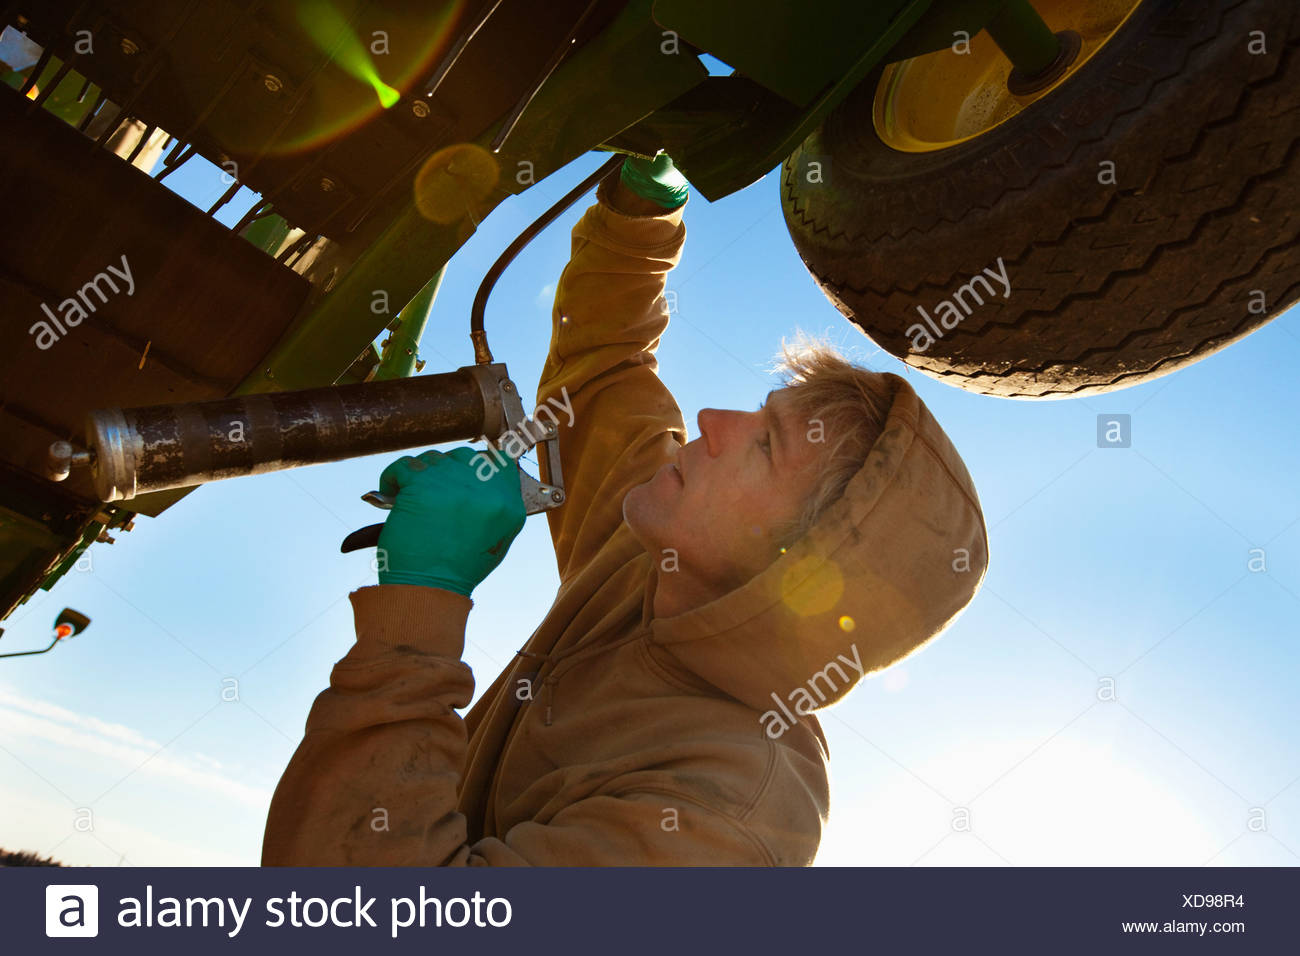 A Person Works On Farm Equipment; Three Hills, Alberta, Canada Stock Photo